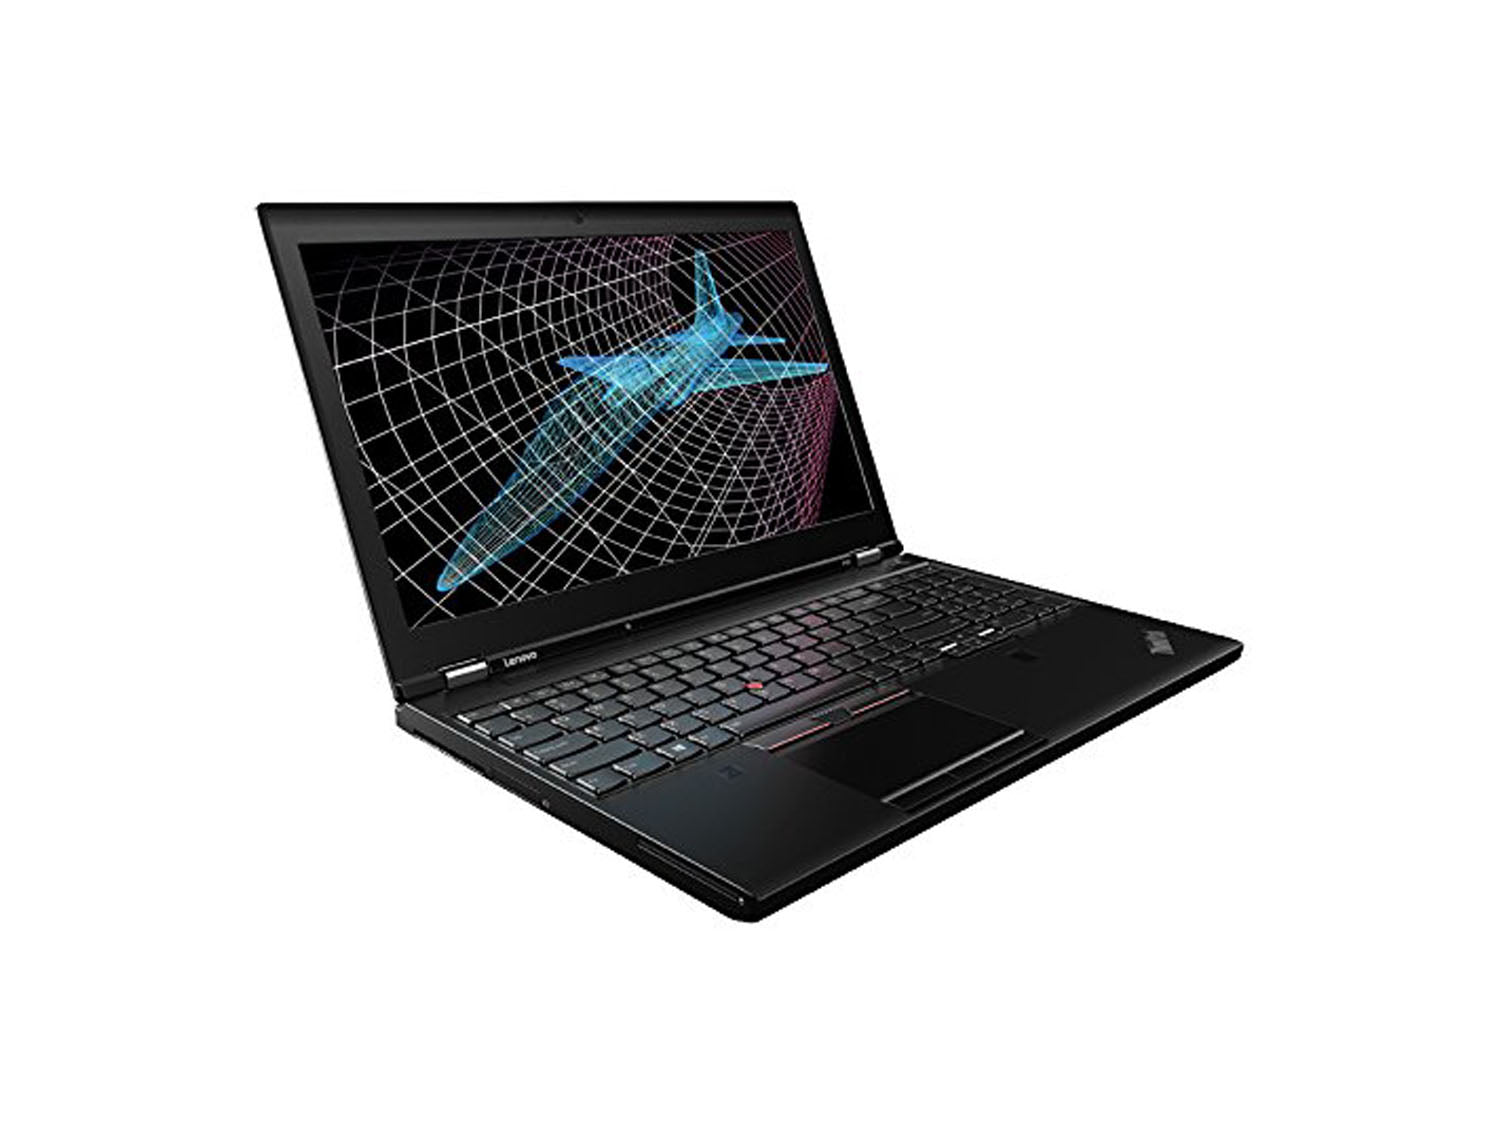 Lenovo ThinkPad P50 Workstation (i7 6th Generation)